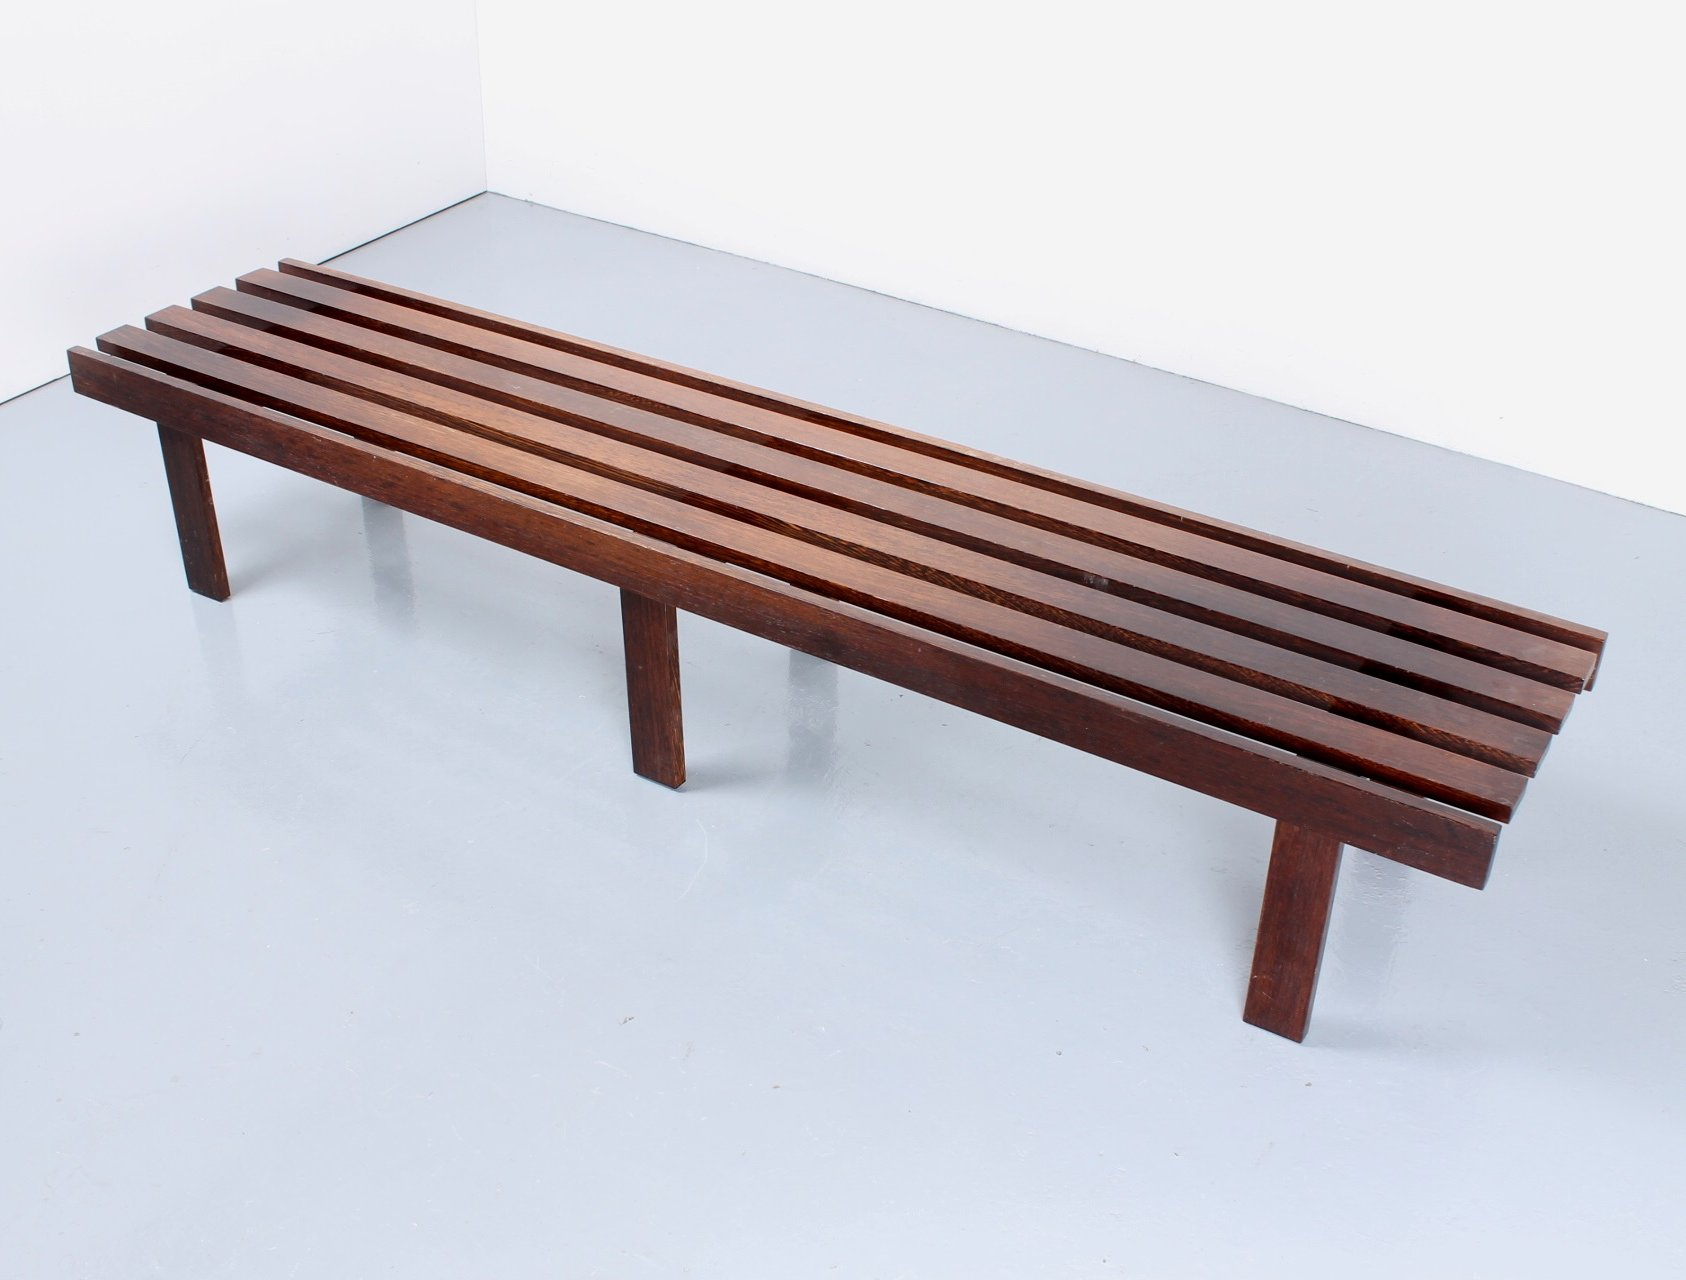 Super Dutch Design Slatted Museum Bench In Wenge Wood 94453 Lamtechconsult Wood Chair Design Ideas Lamtechconsultcom